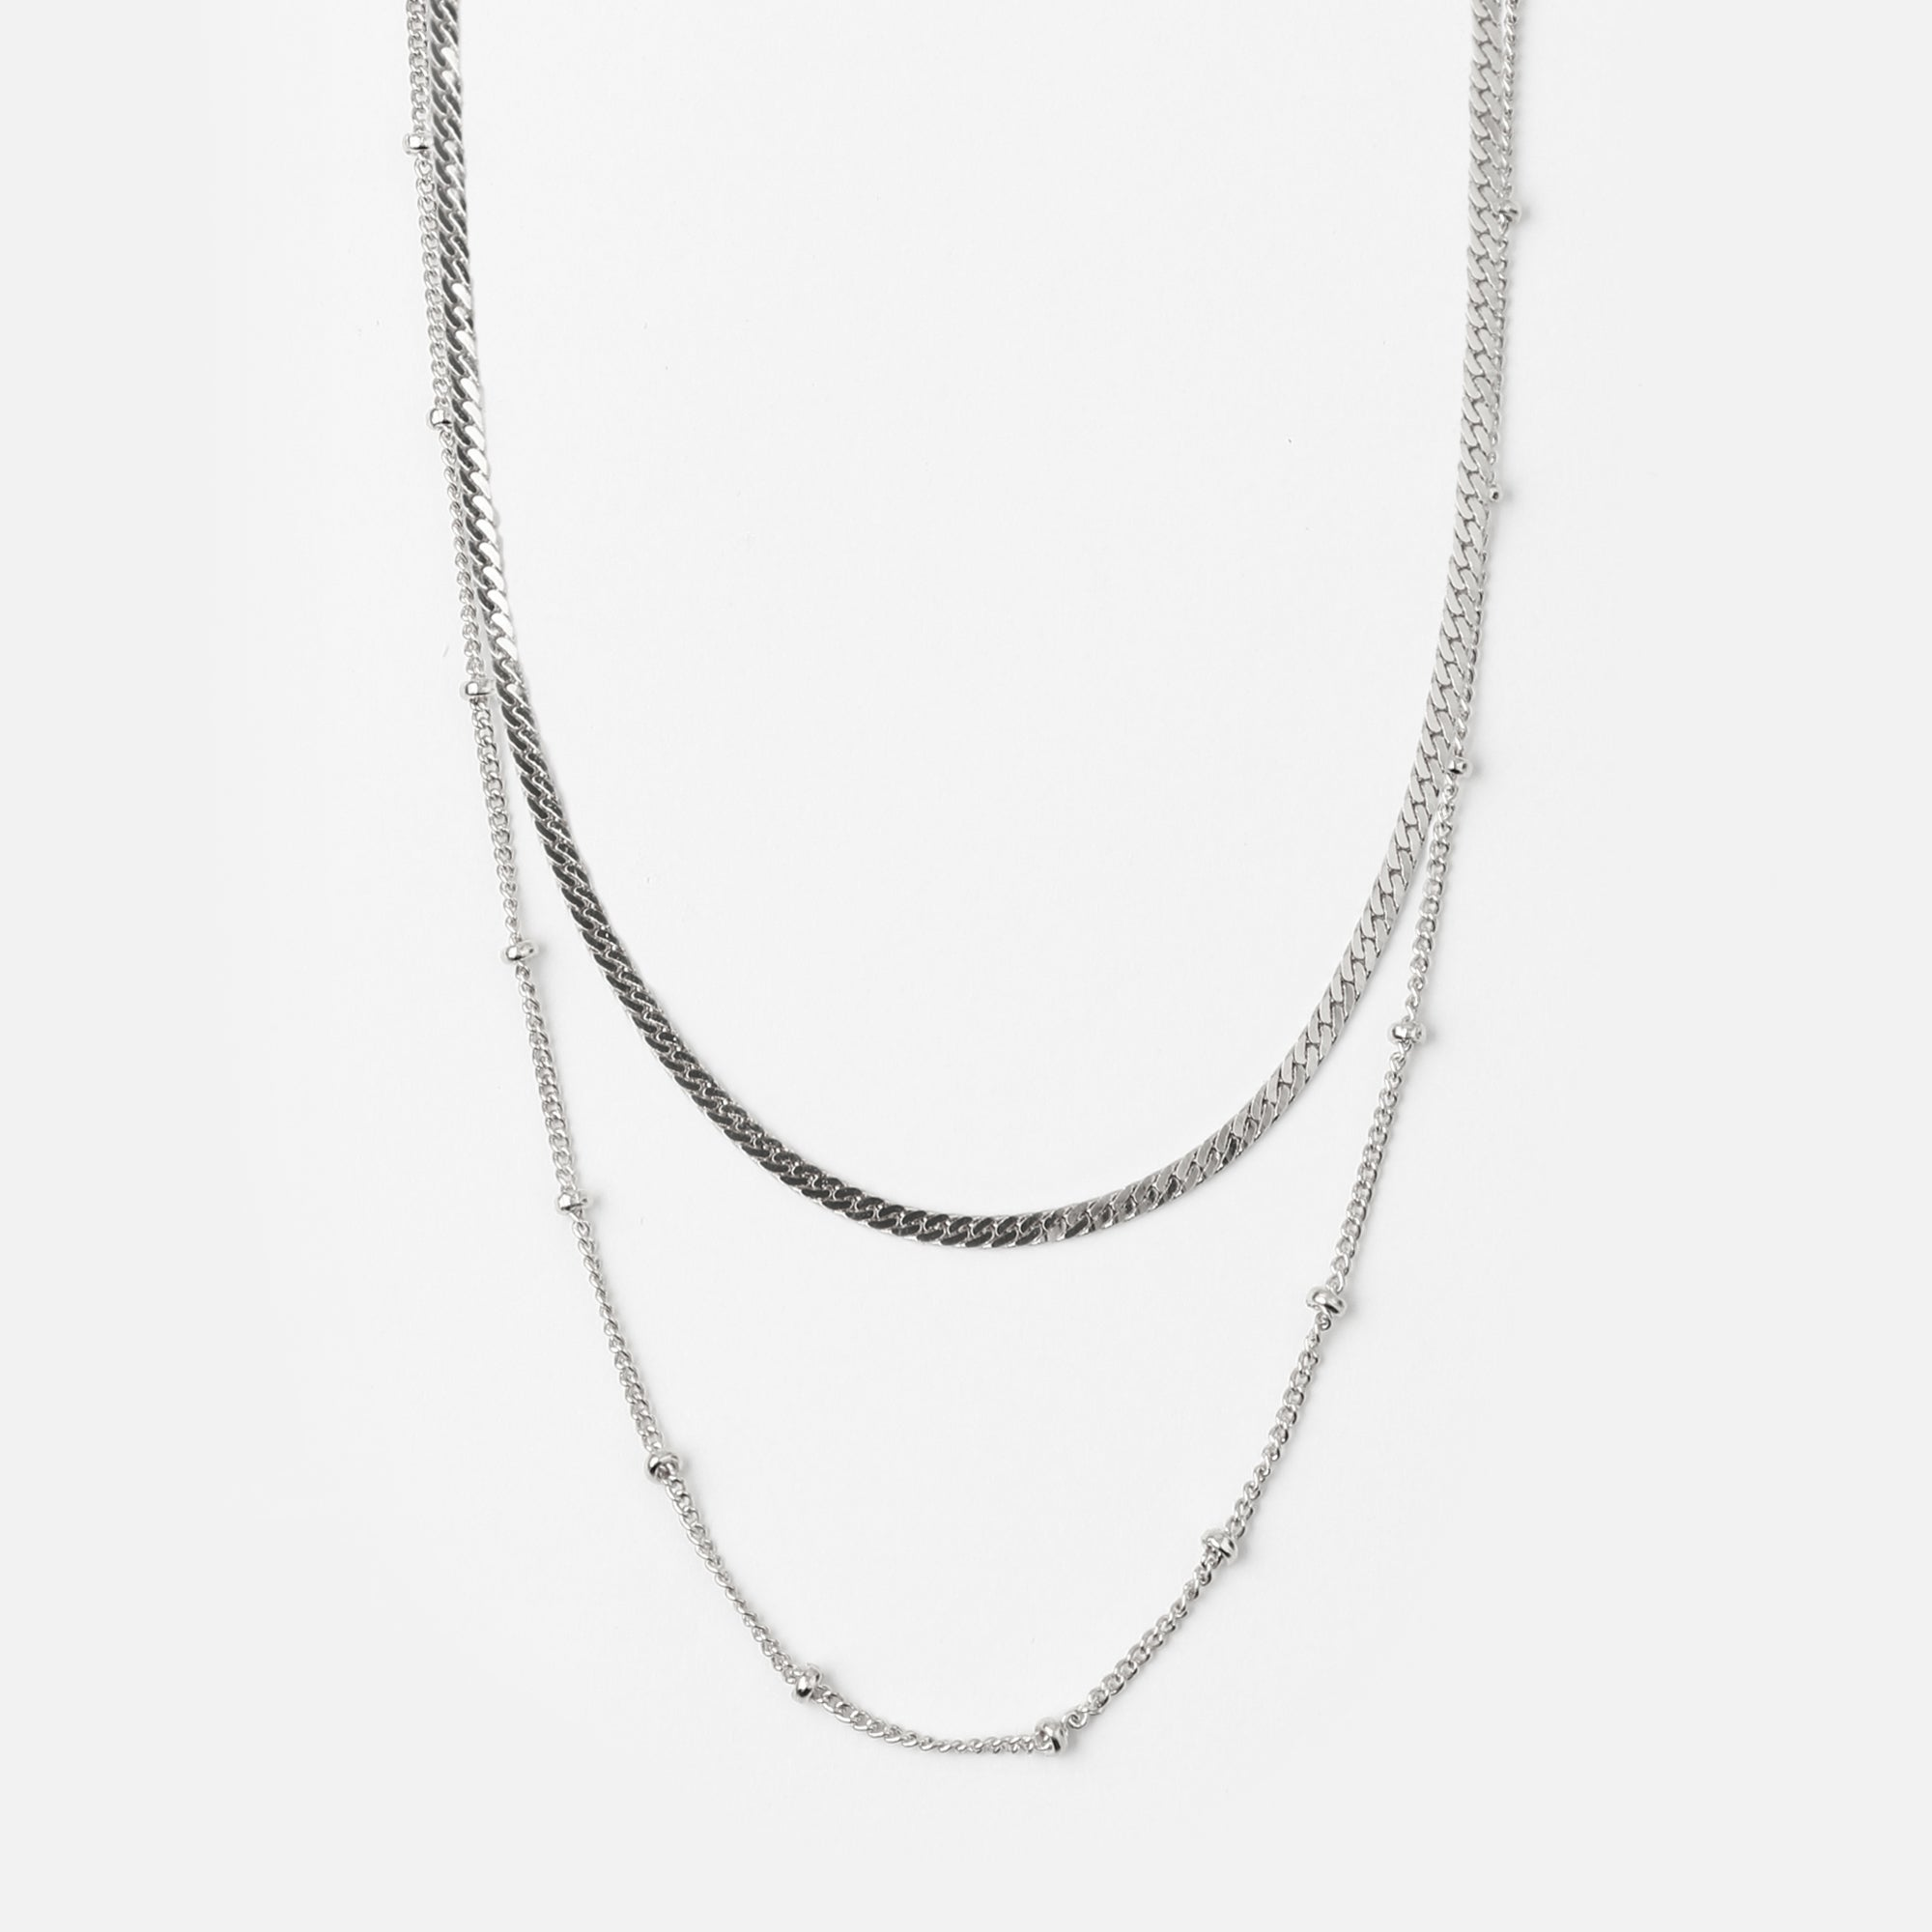 Satellite & Flat Curb Layered Necklace - Silver